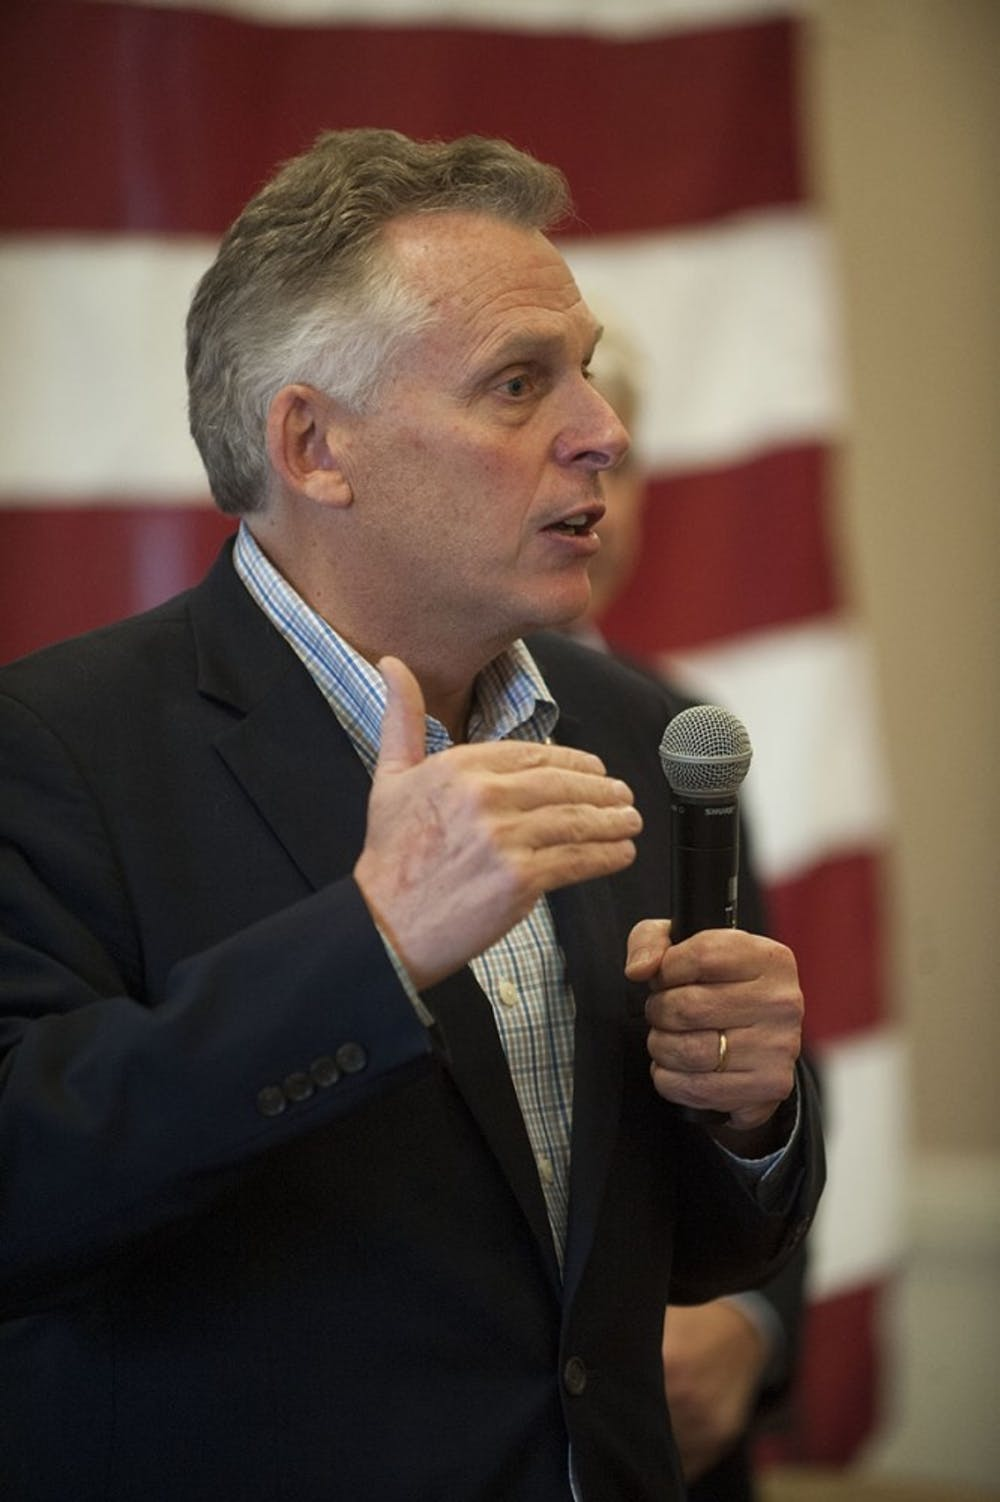 <p>McAuliffe's position welcomes refugees while focusing foremost on the safety of Virginians, Coy said.</p>